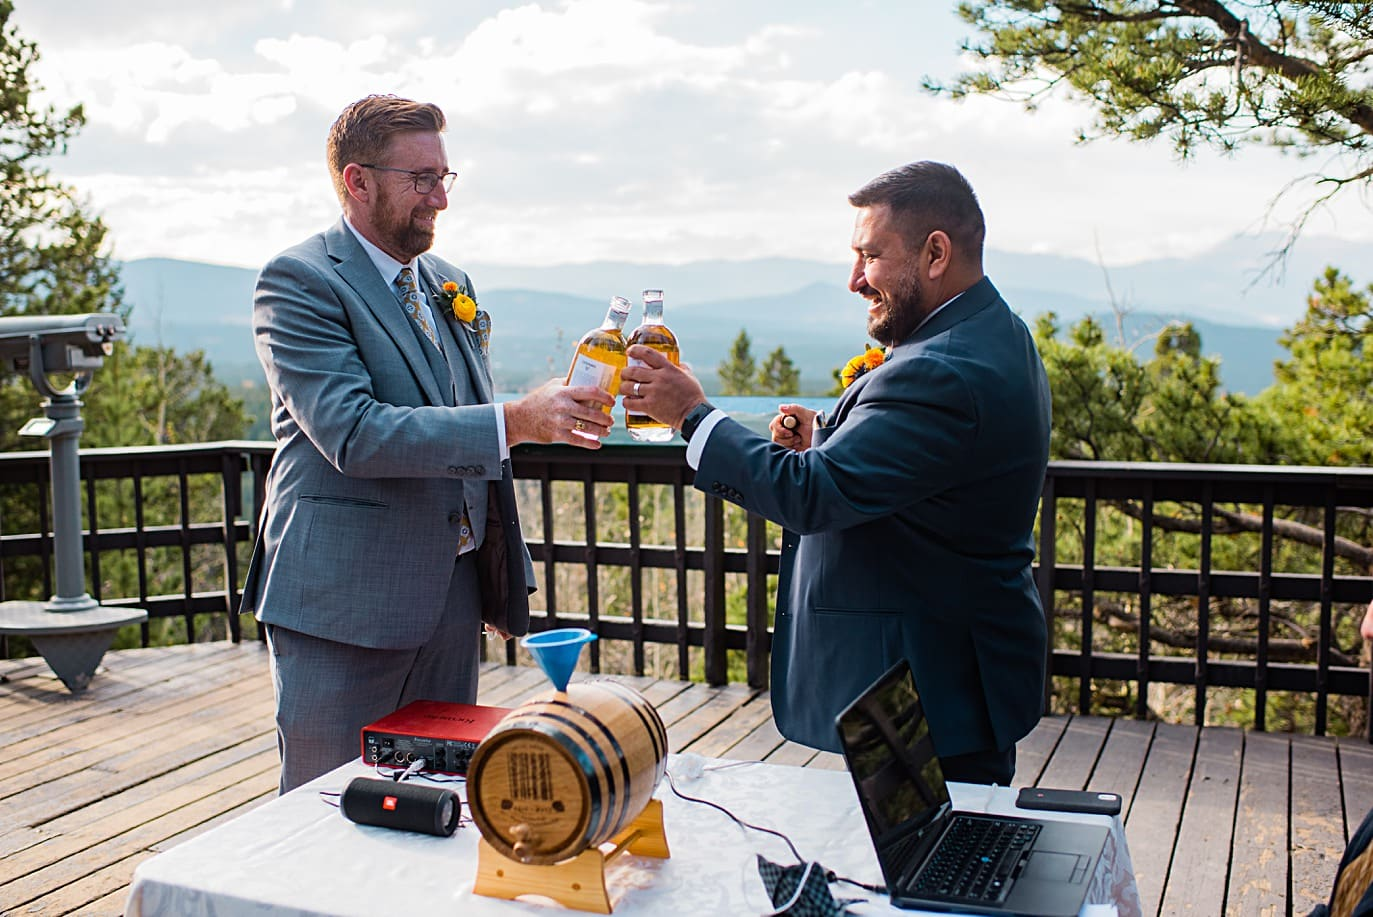 grooms toast with whiskey during whisky ceremony at Golden Gate Canyon microwedding by Golden wedding photographer Jennie Crate